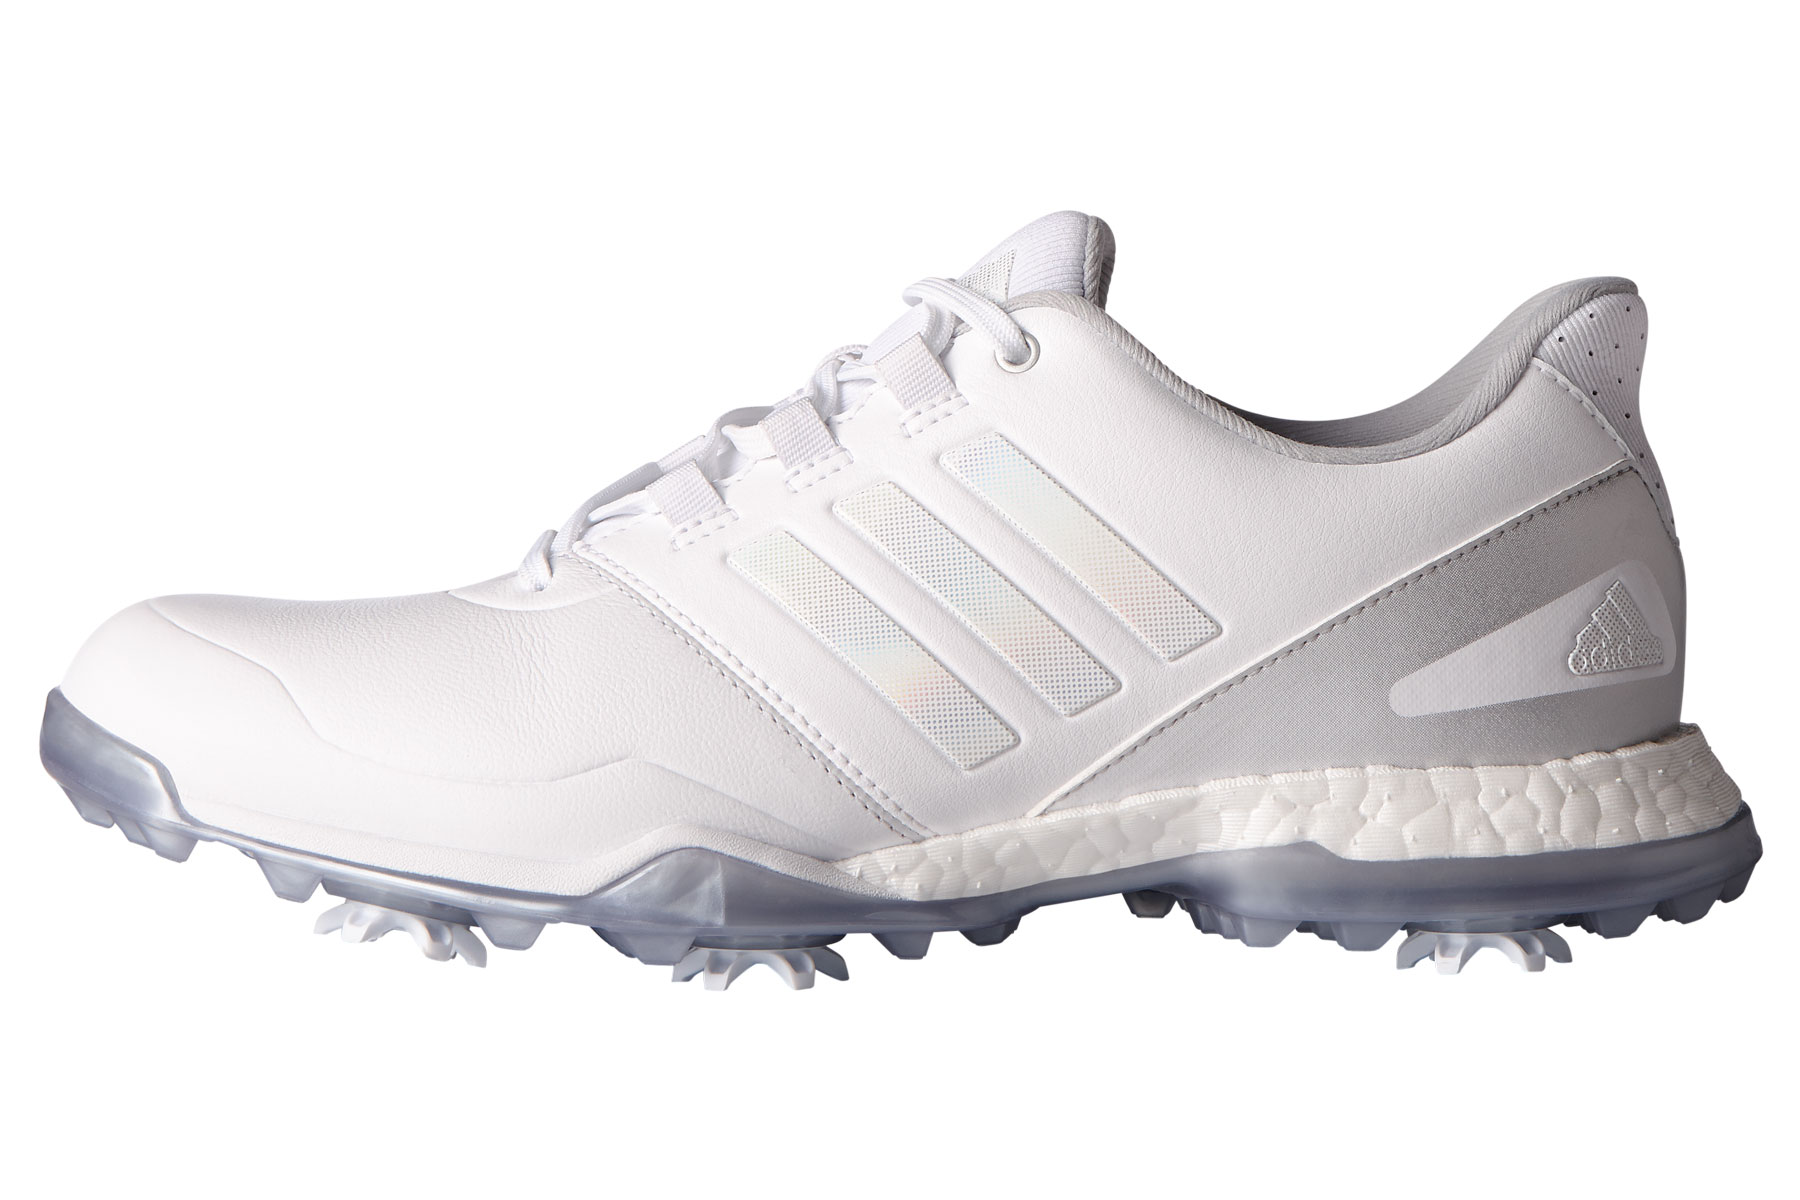 Adidas Golf Adipower Boost  Ladies Shoes